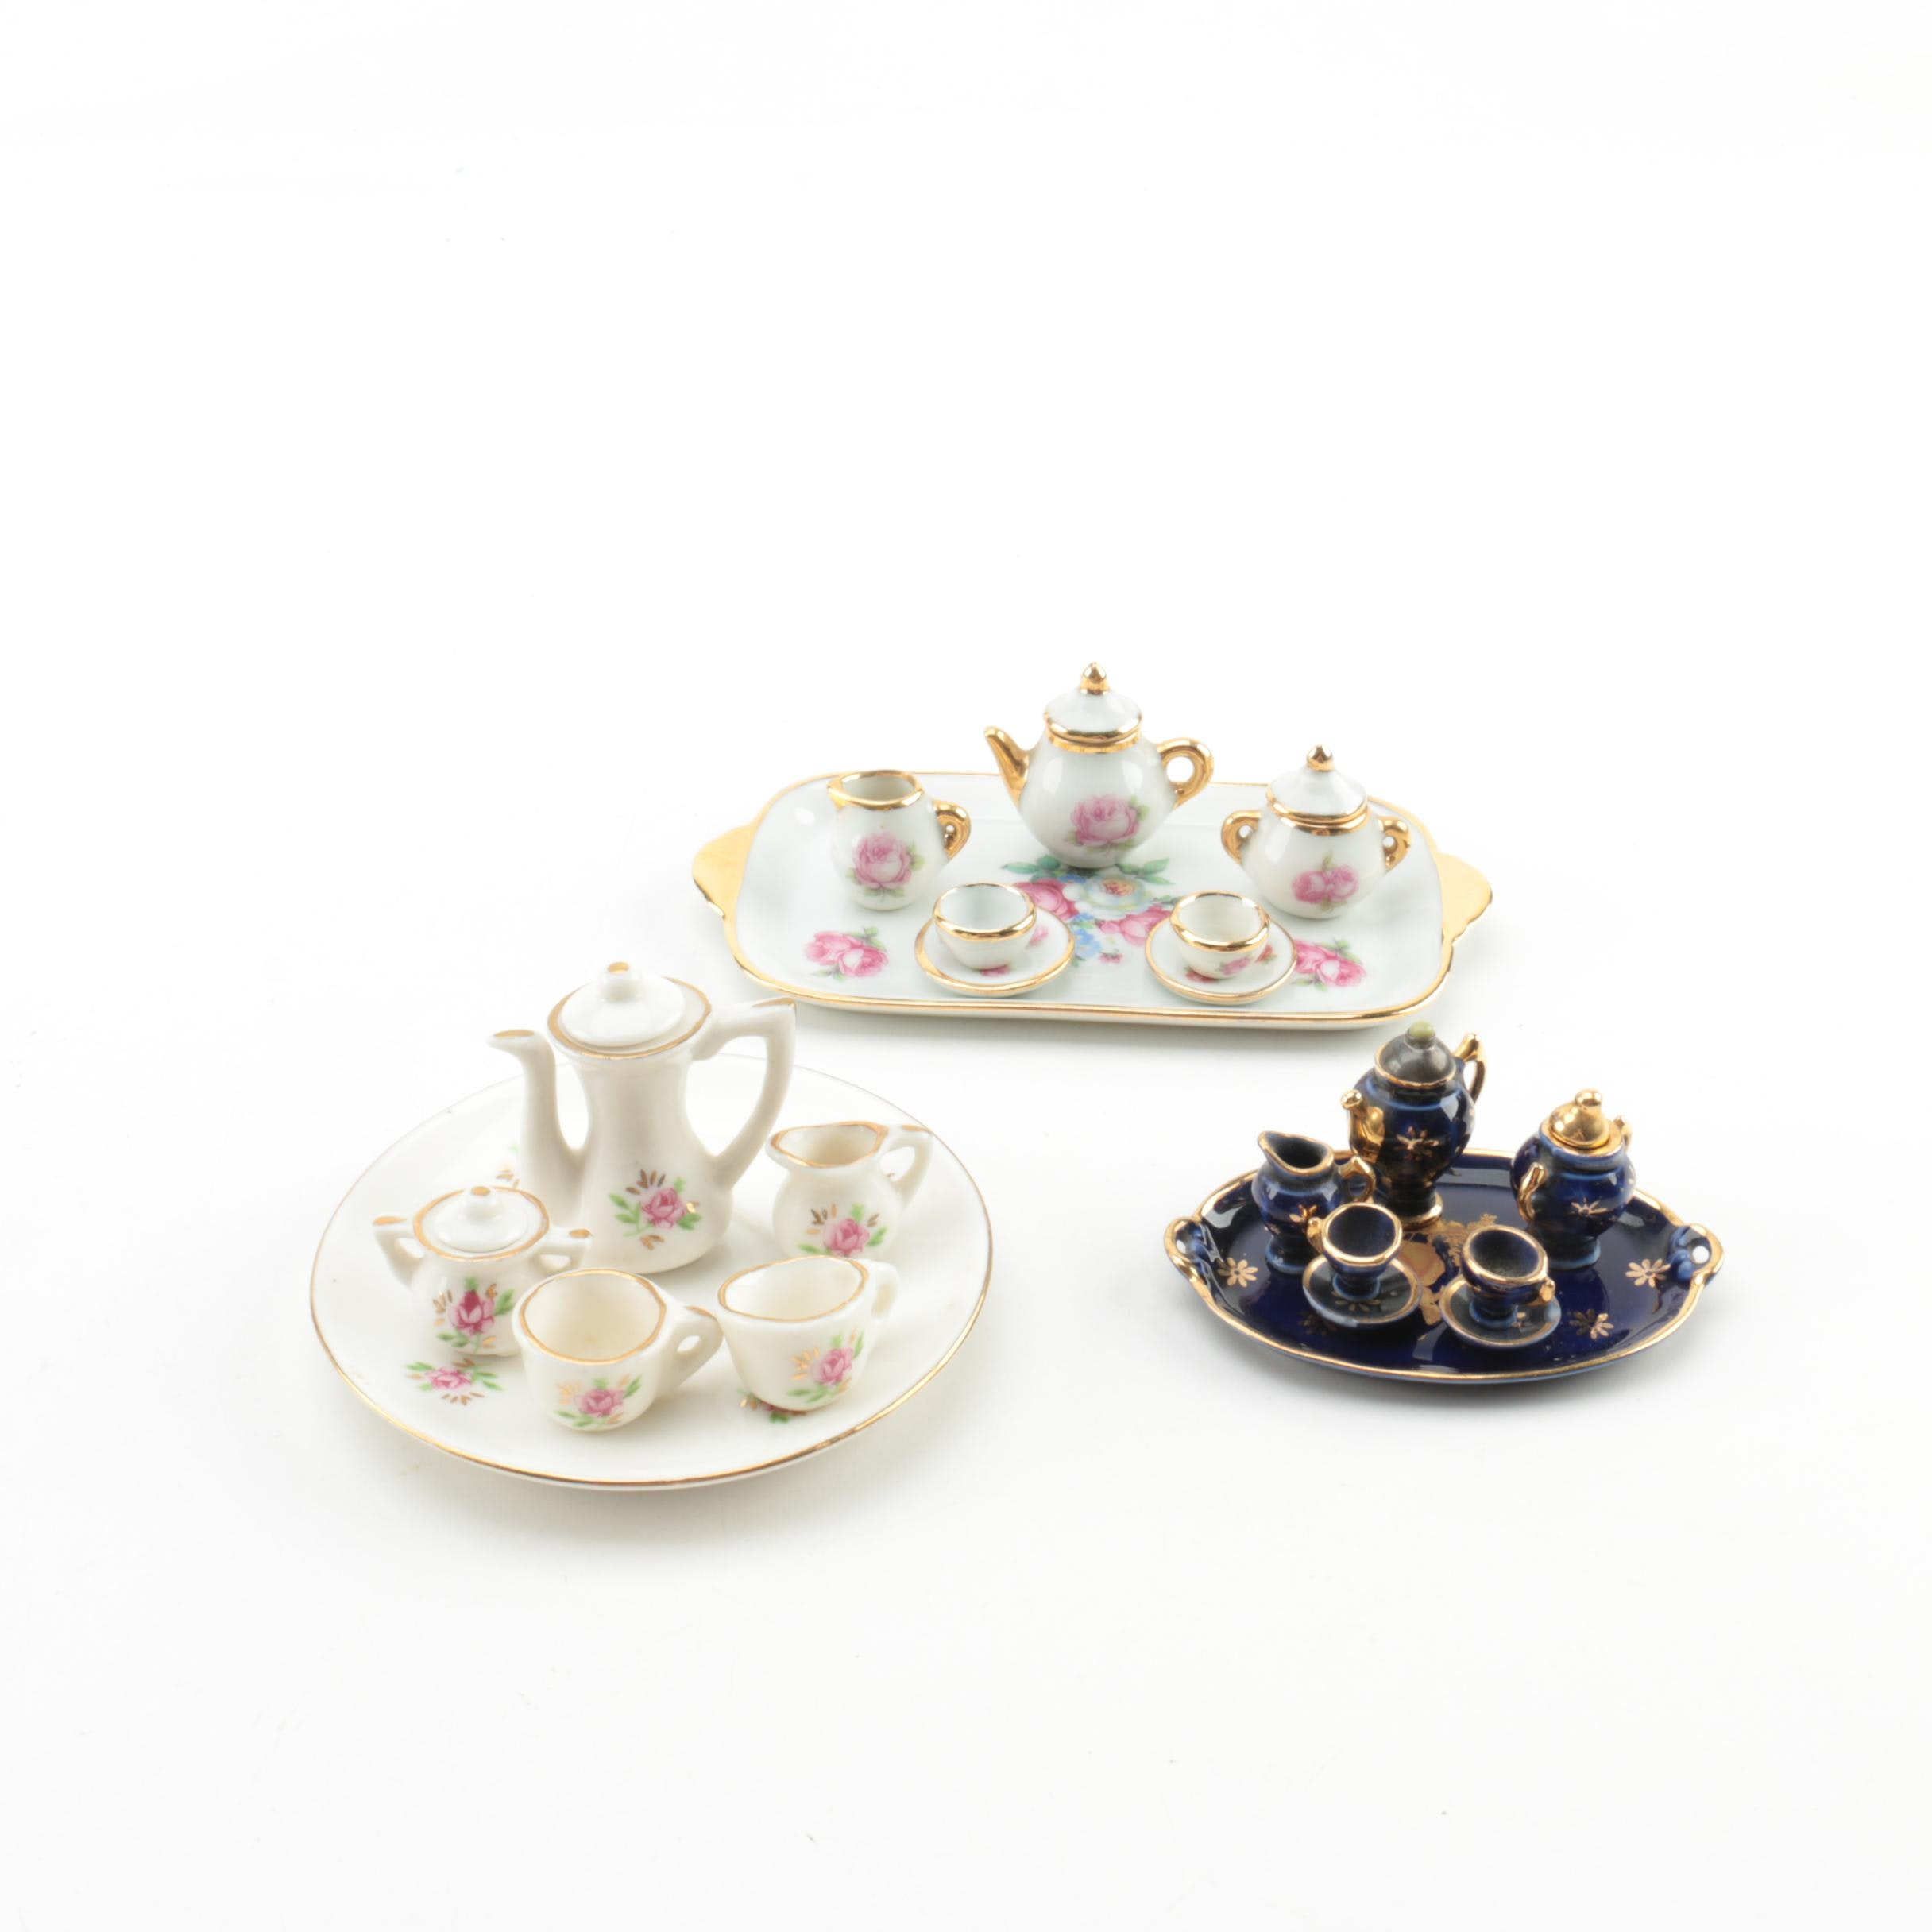 Miniature Limoges Porcelain Tea Sets With Platters ...